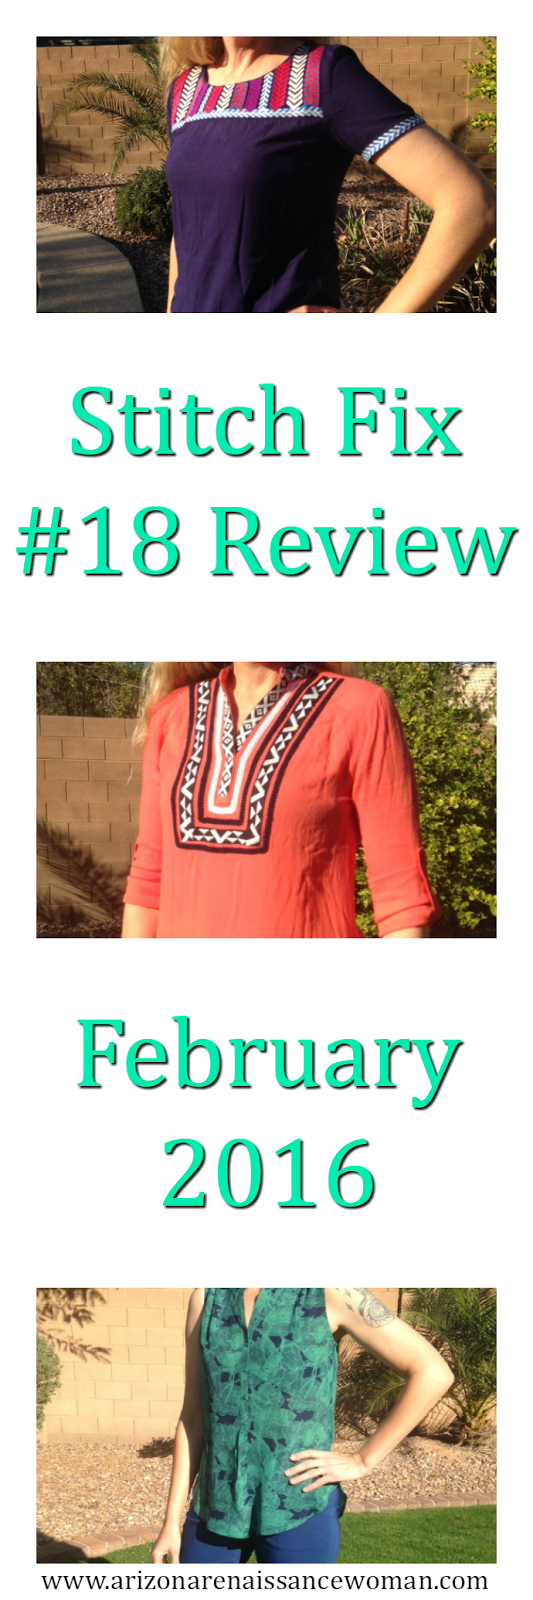 February 2016 Stitch Fix Review Collage